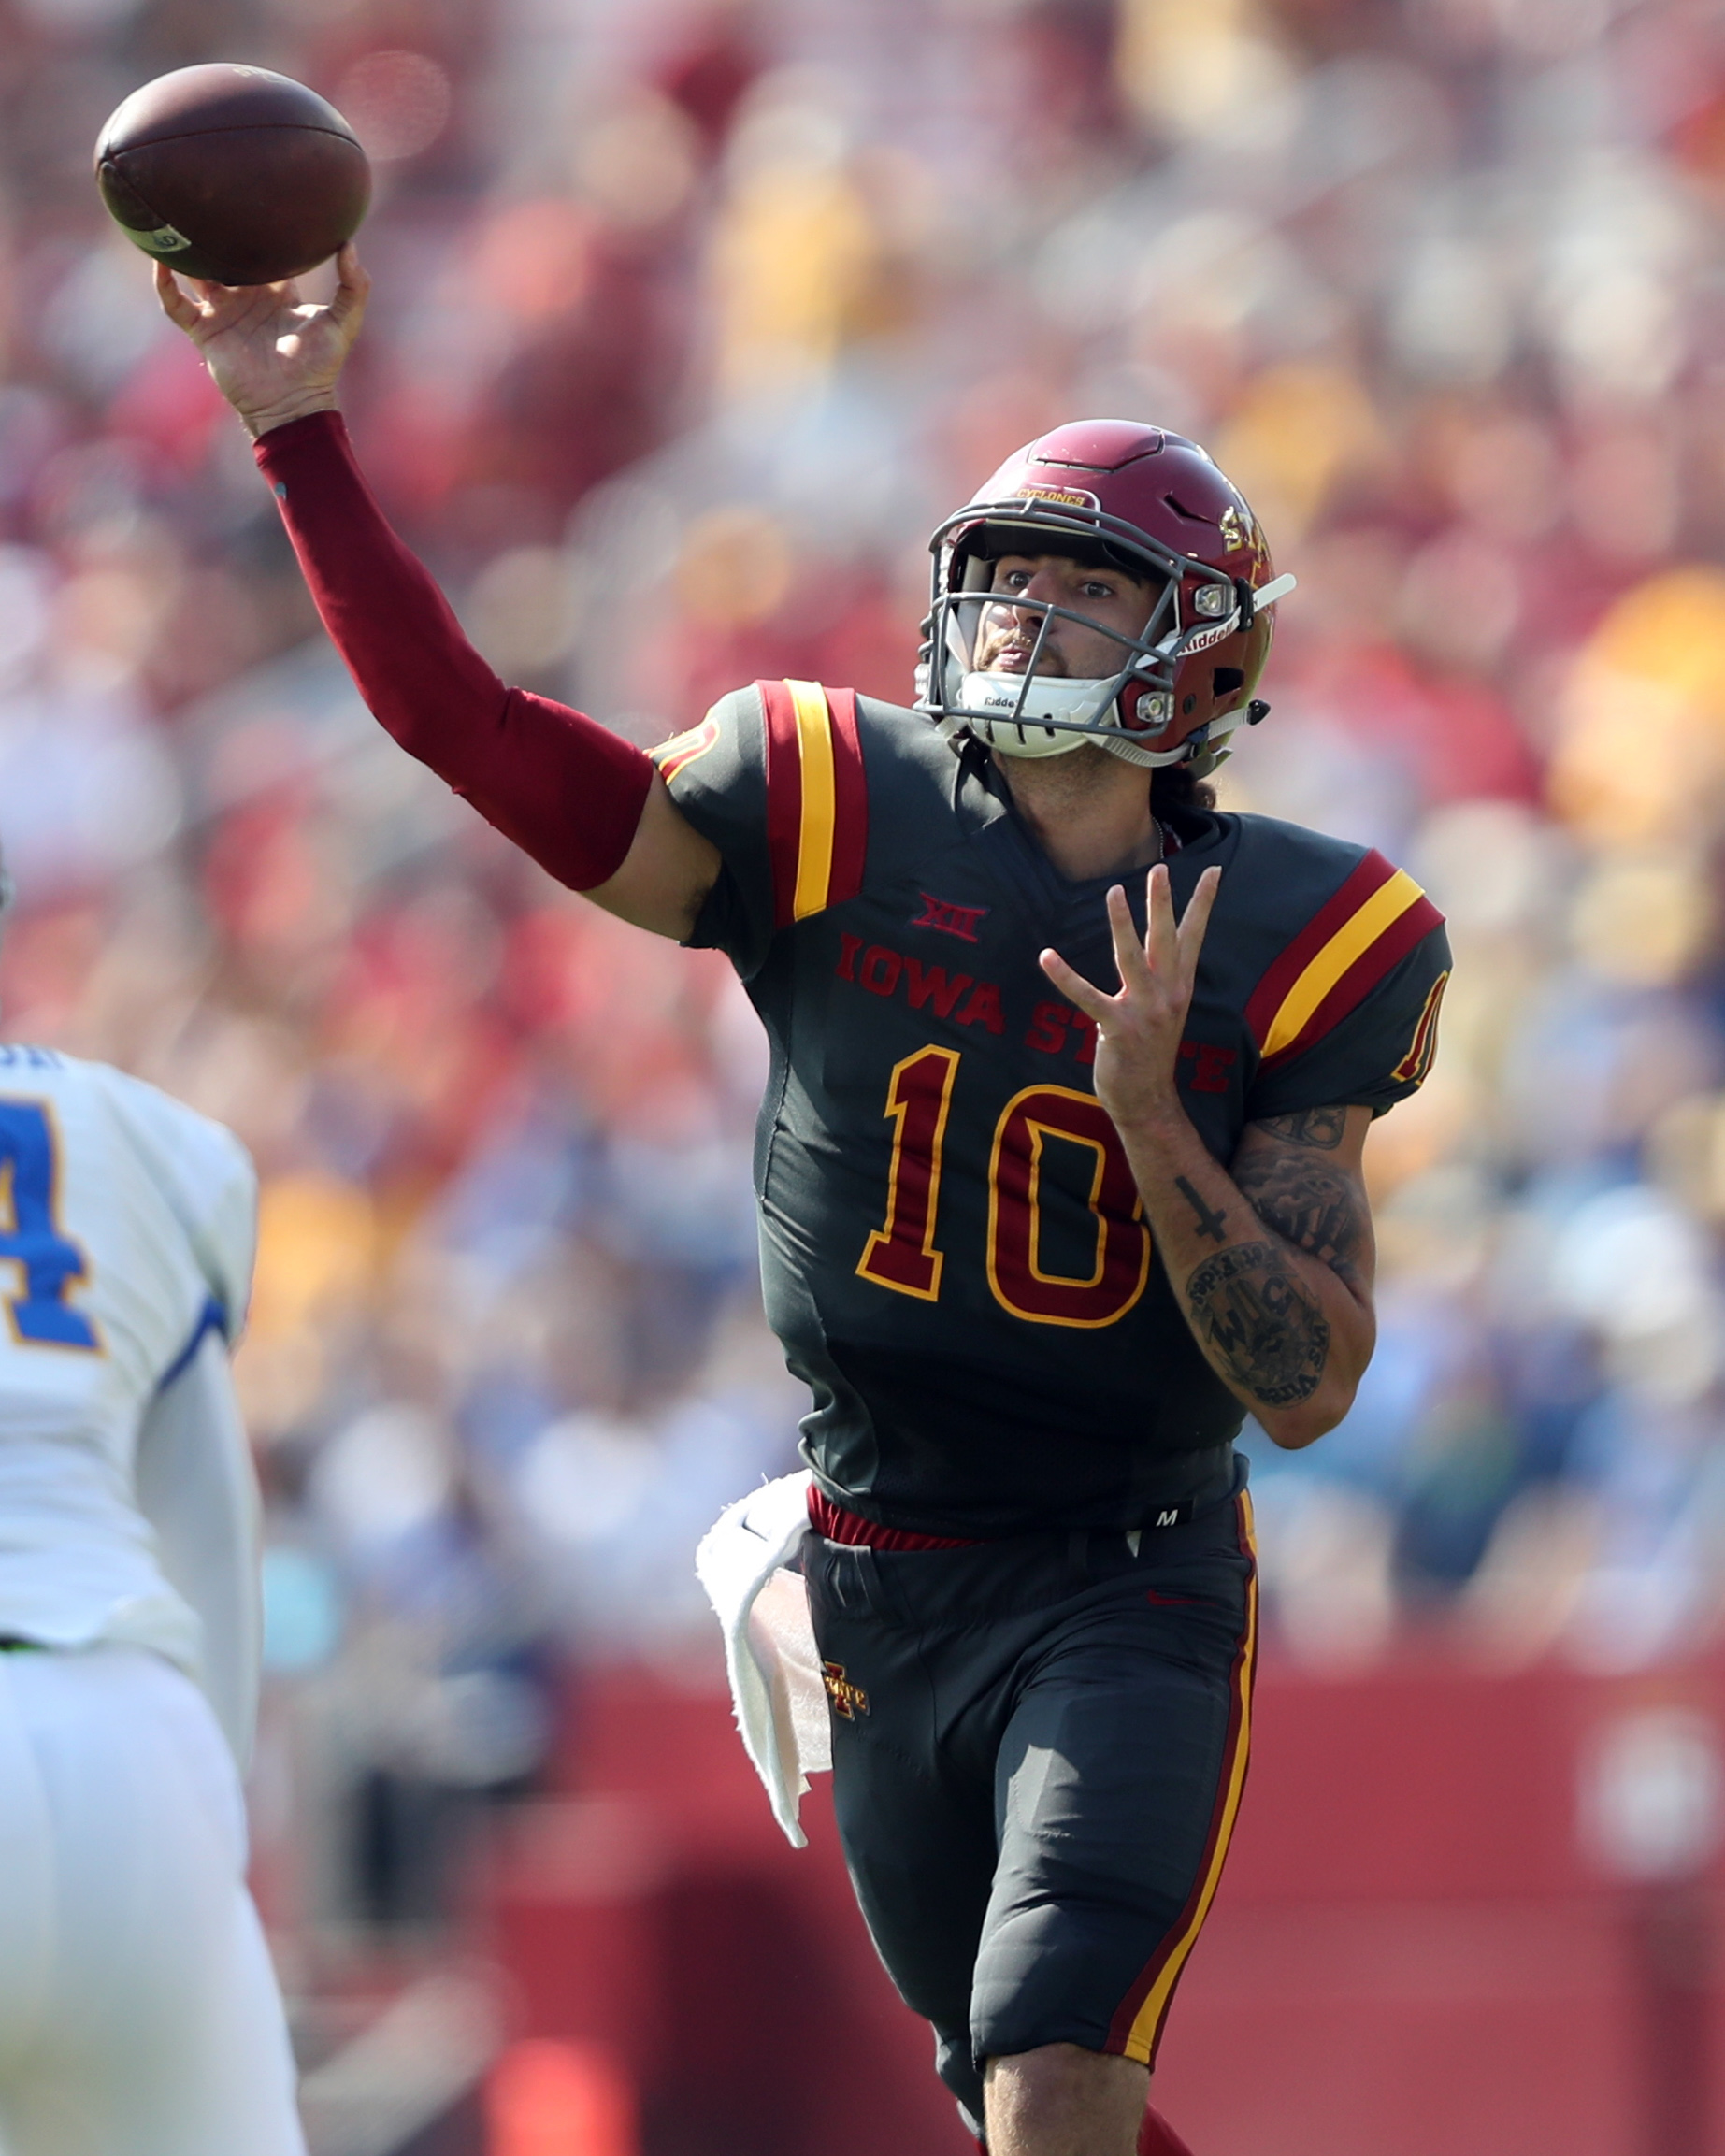 Sep 24, 2016; Ames, IA, USA; Iowa State Cyclones quarterback Jacob Park (10) throws a pass against the San Jose State Spartans at Jack Trice Stadium. Mandatory Credit: Reese Strickland-USA TODAY Sports